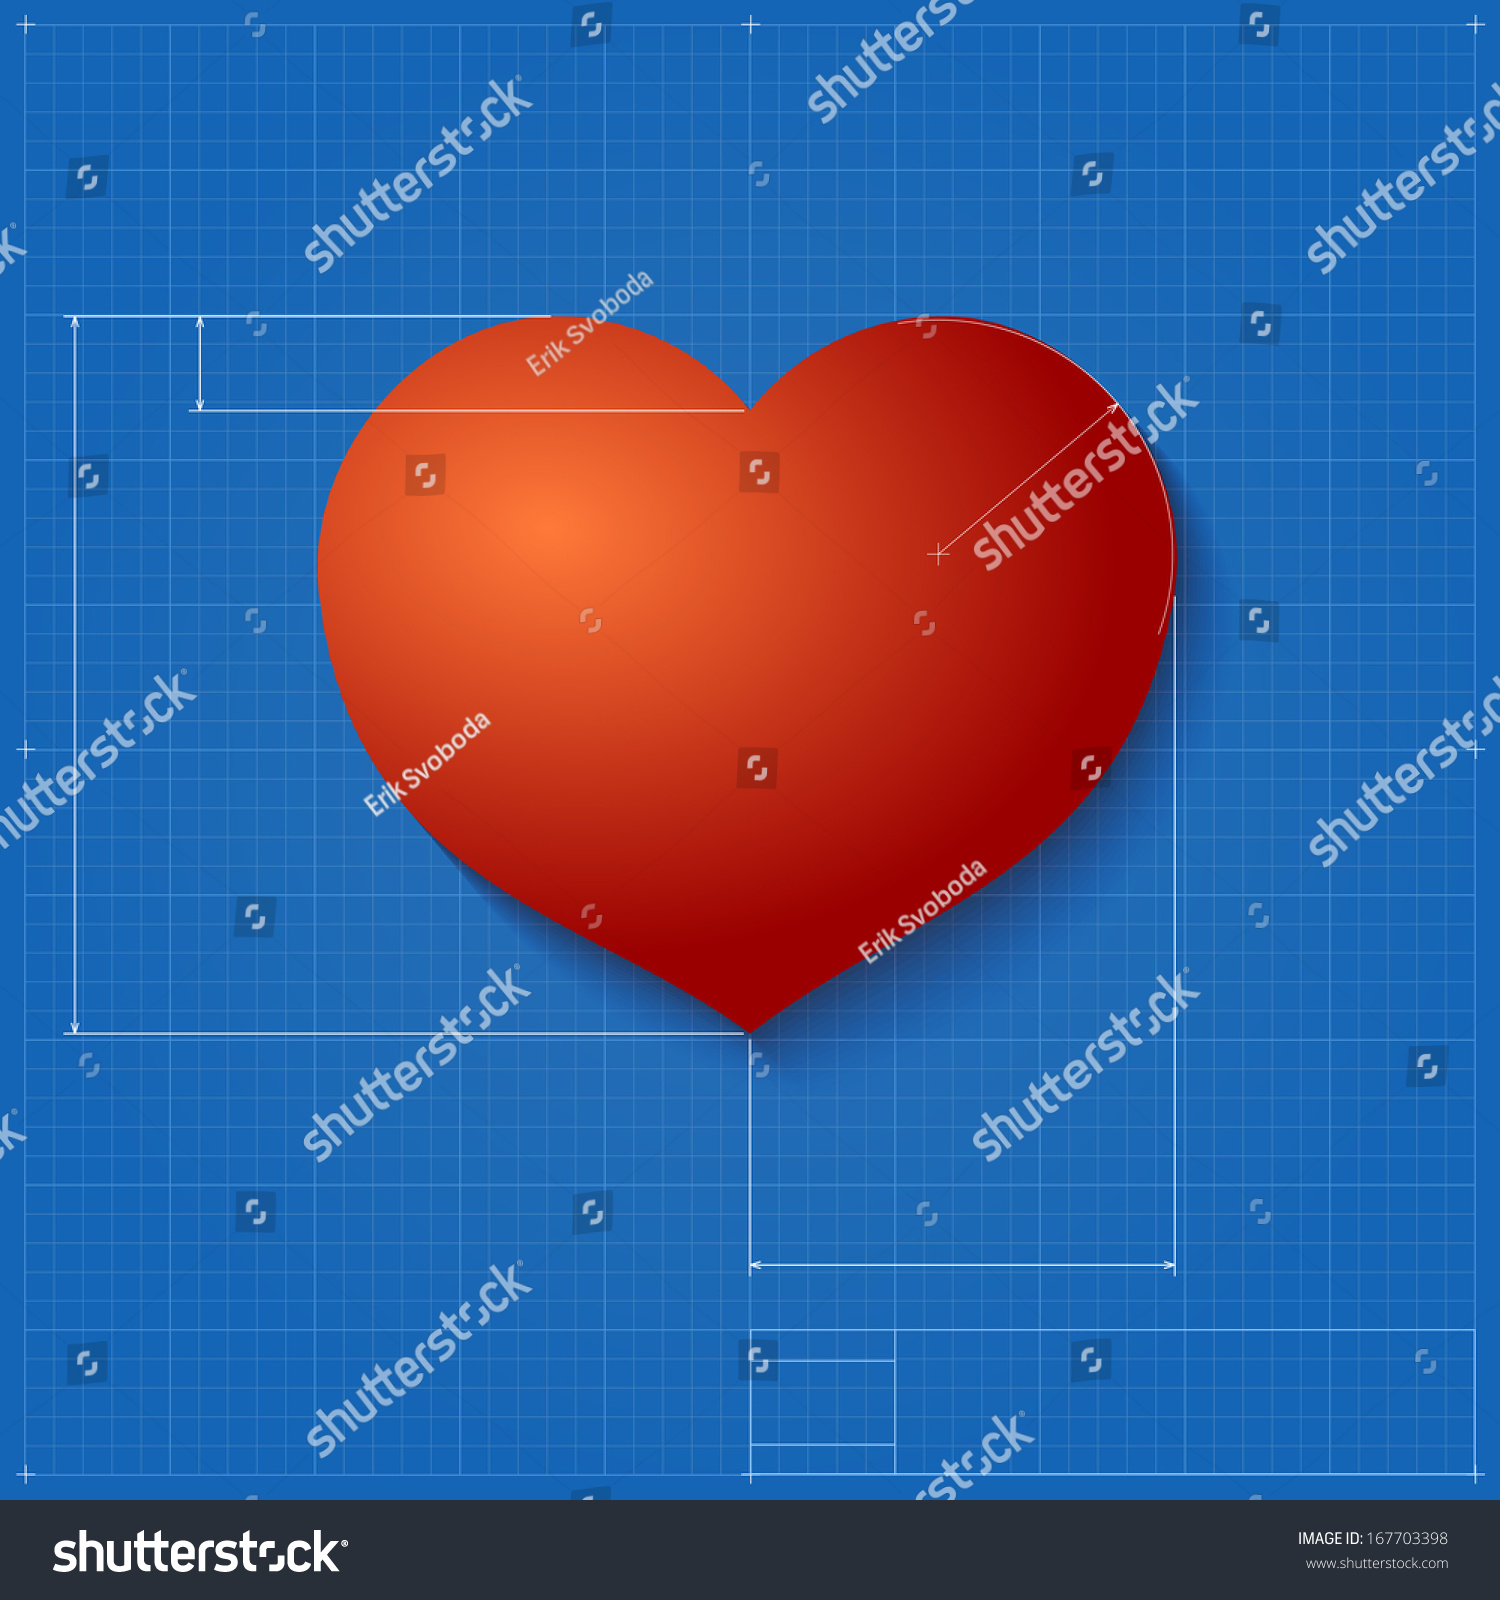 Heart symbol like blueprint drawing stylized stock vector heart symbol like blueprint drawing stylized drafting of gift sign on blueprint paper vector malvernweather Image collections